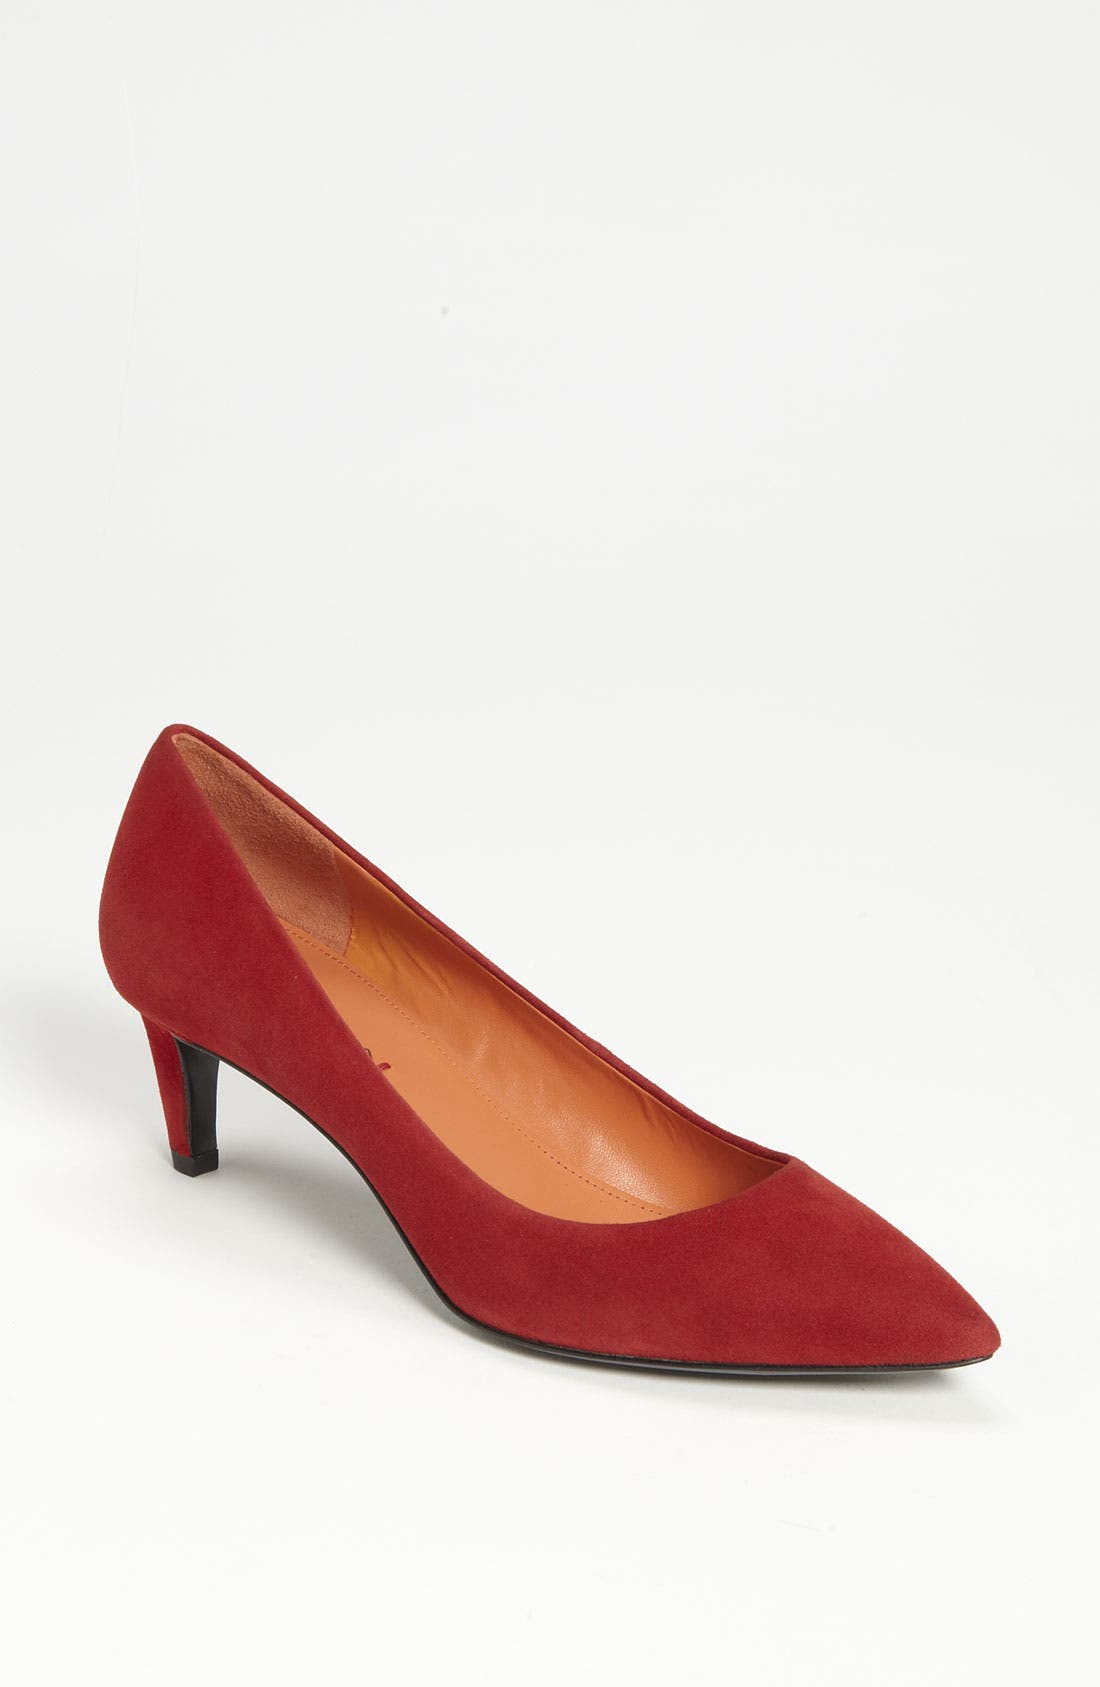 Alternate Image 1 Selected - Via Spiga 'Angie' Pump